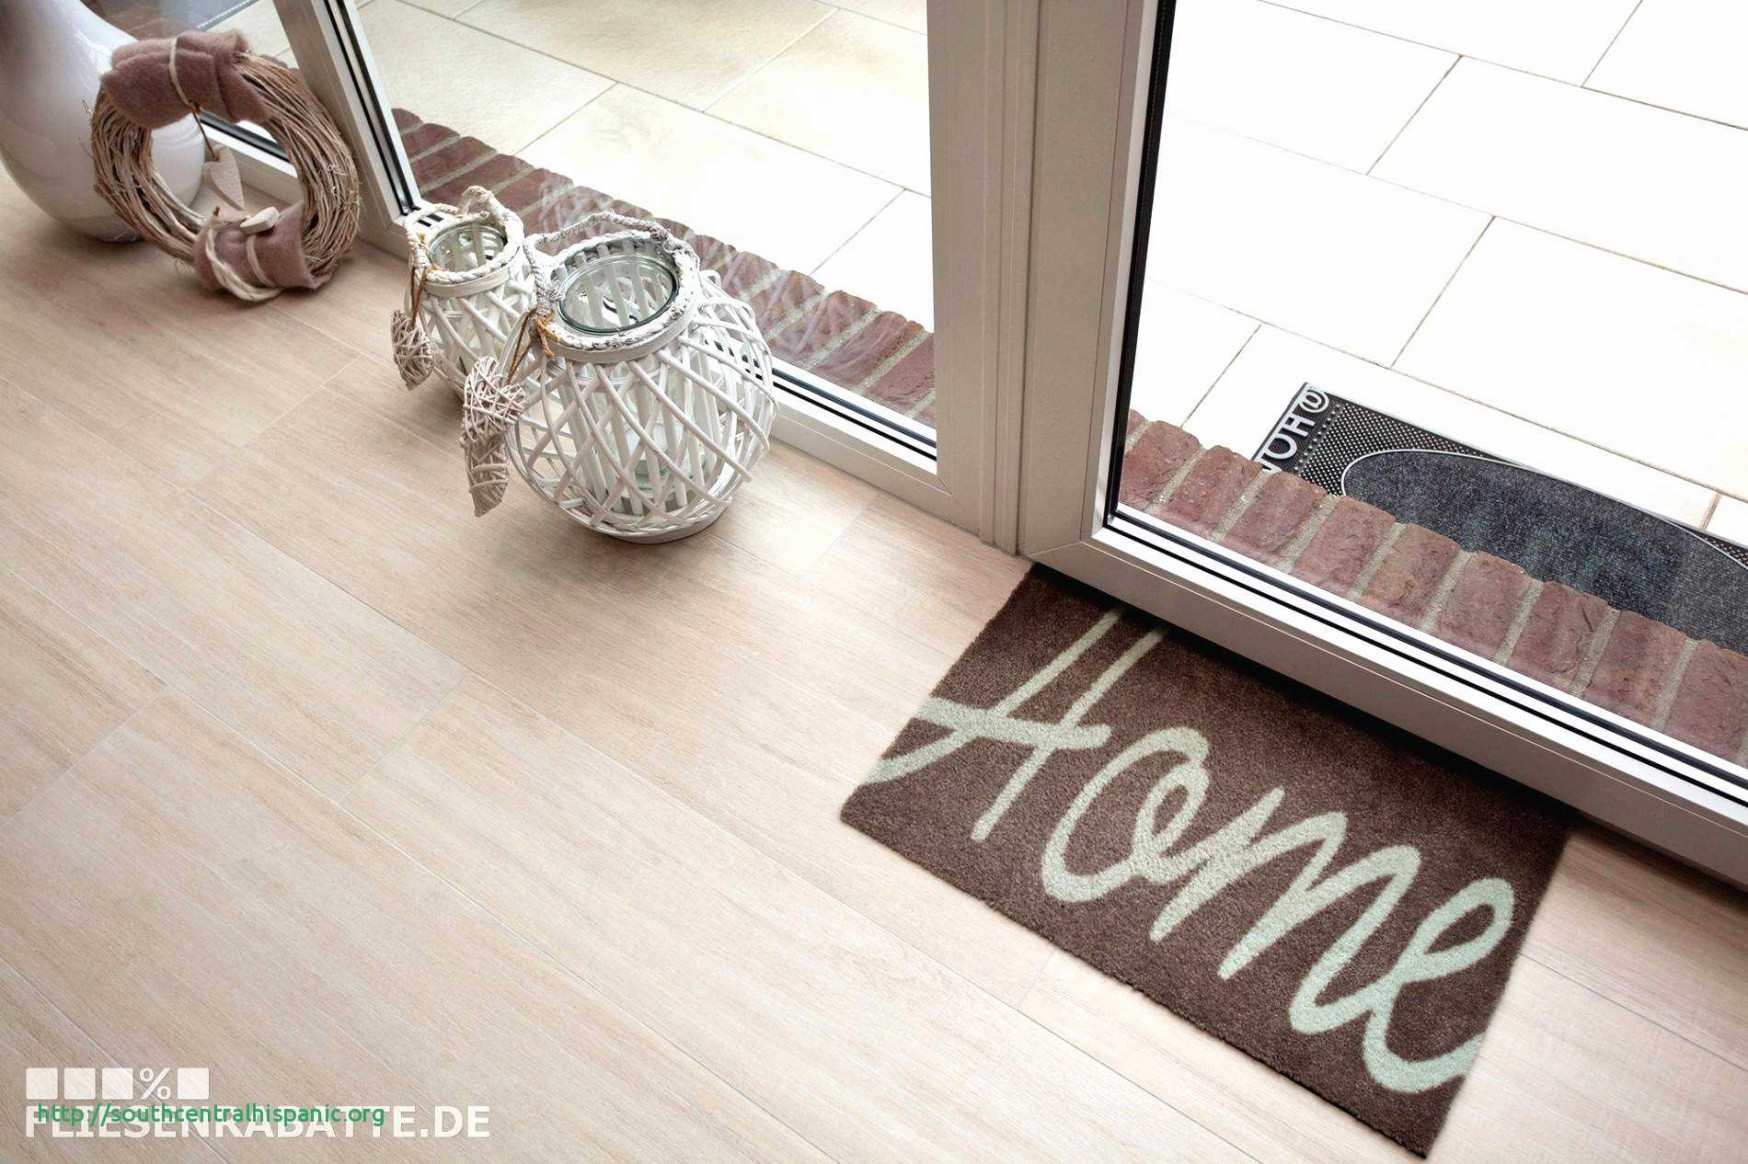 best prices on hardwood flooring of entryway floor tile photos melthphx for 12 photos gallery of entryway floor tile photos